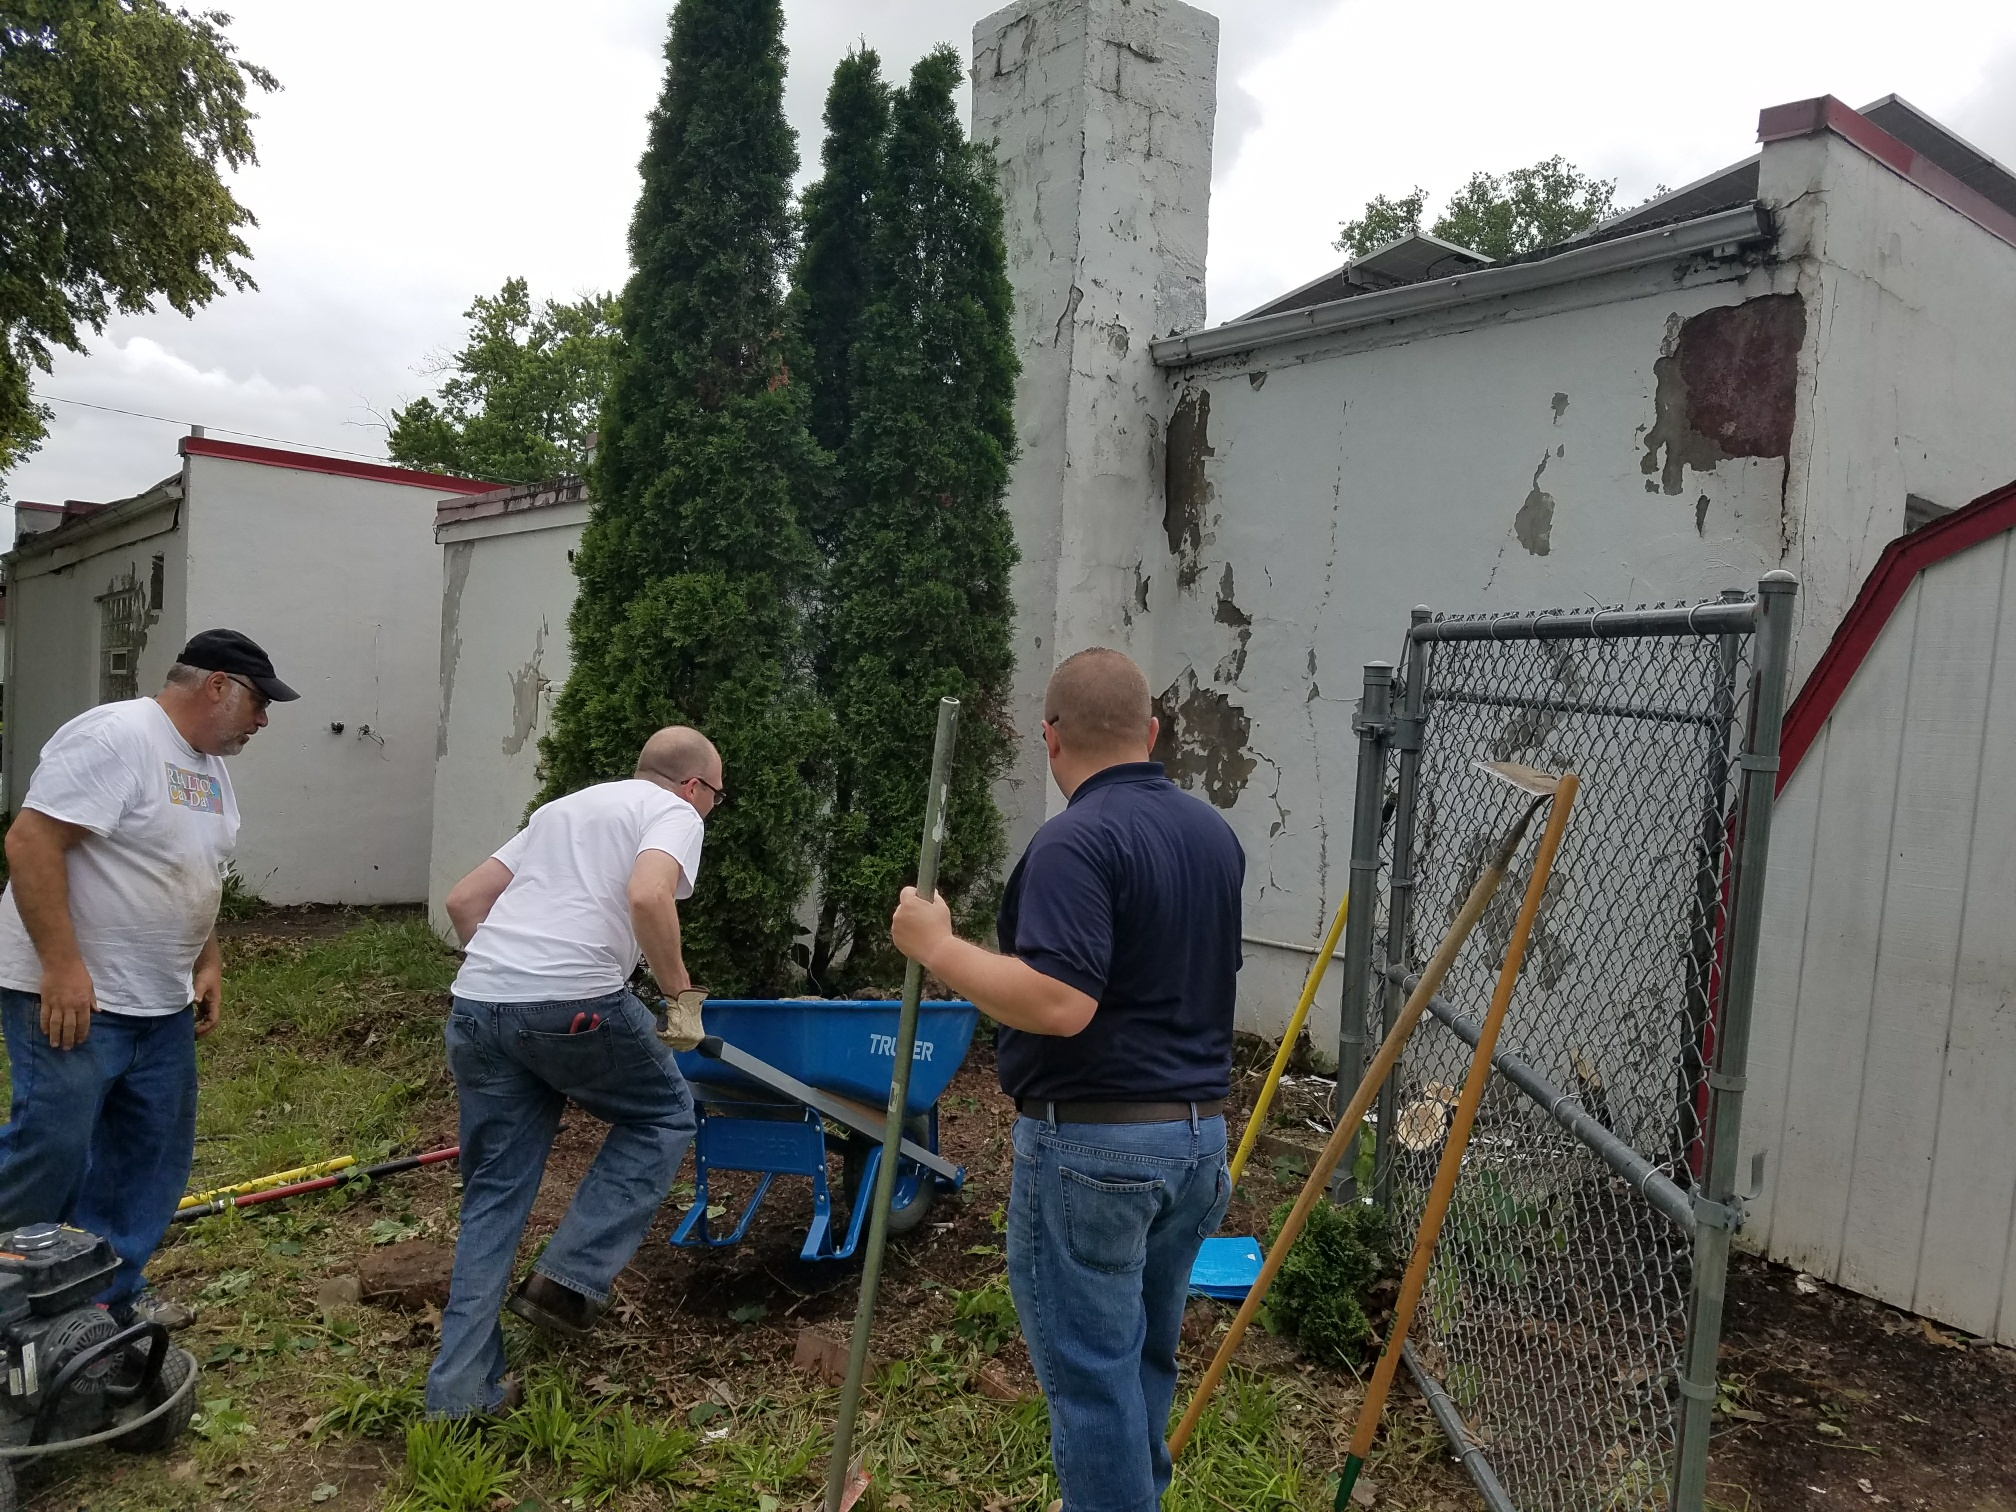 CCIIR members cleared nuisance trees as part of their cleanup efforts at American Addition.